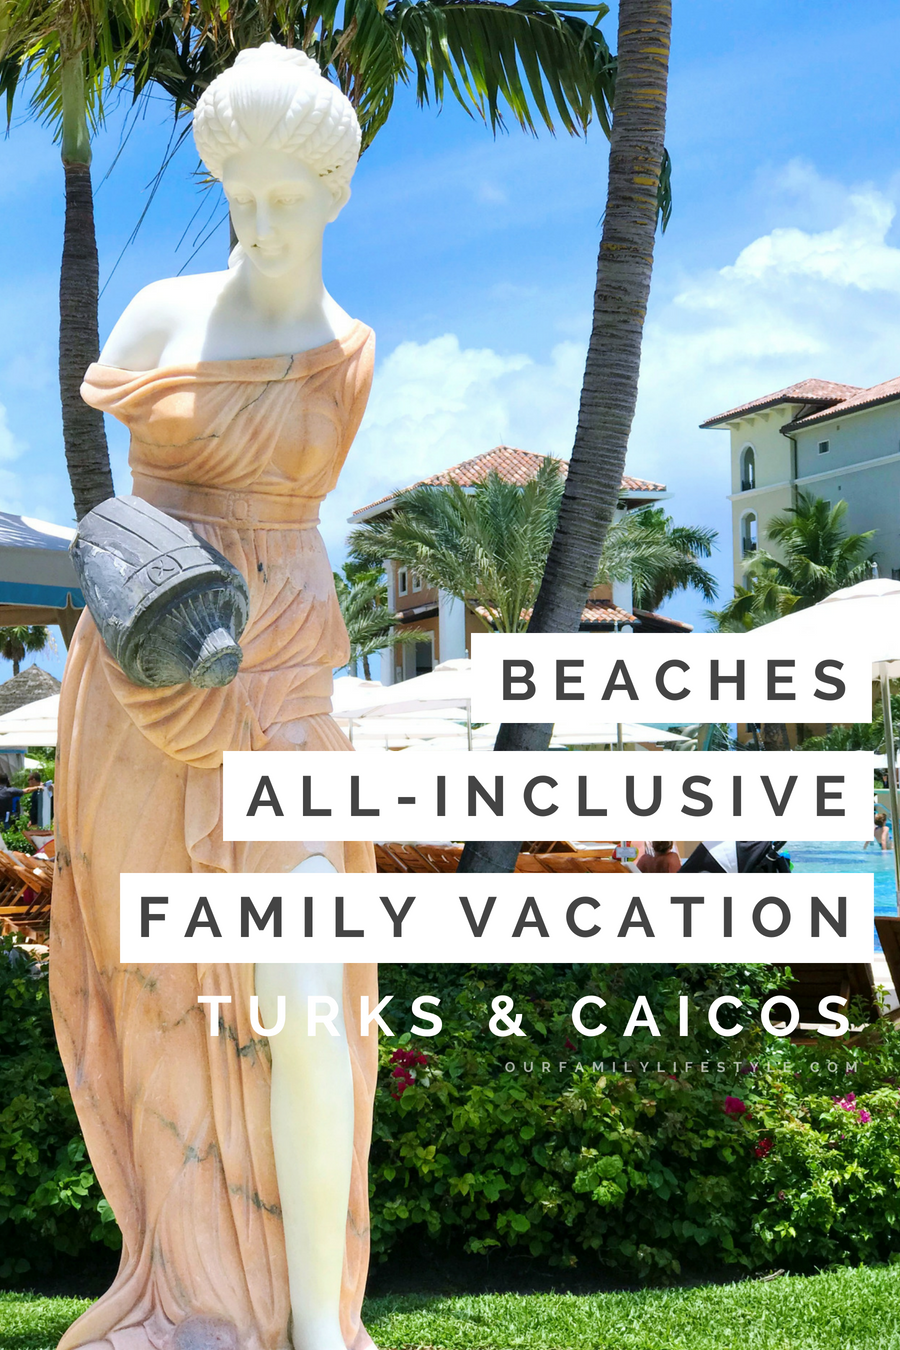 Beaches Resorts Offers All-Inclusive Family Vacation in Turks & Caicos